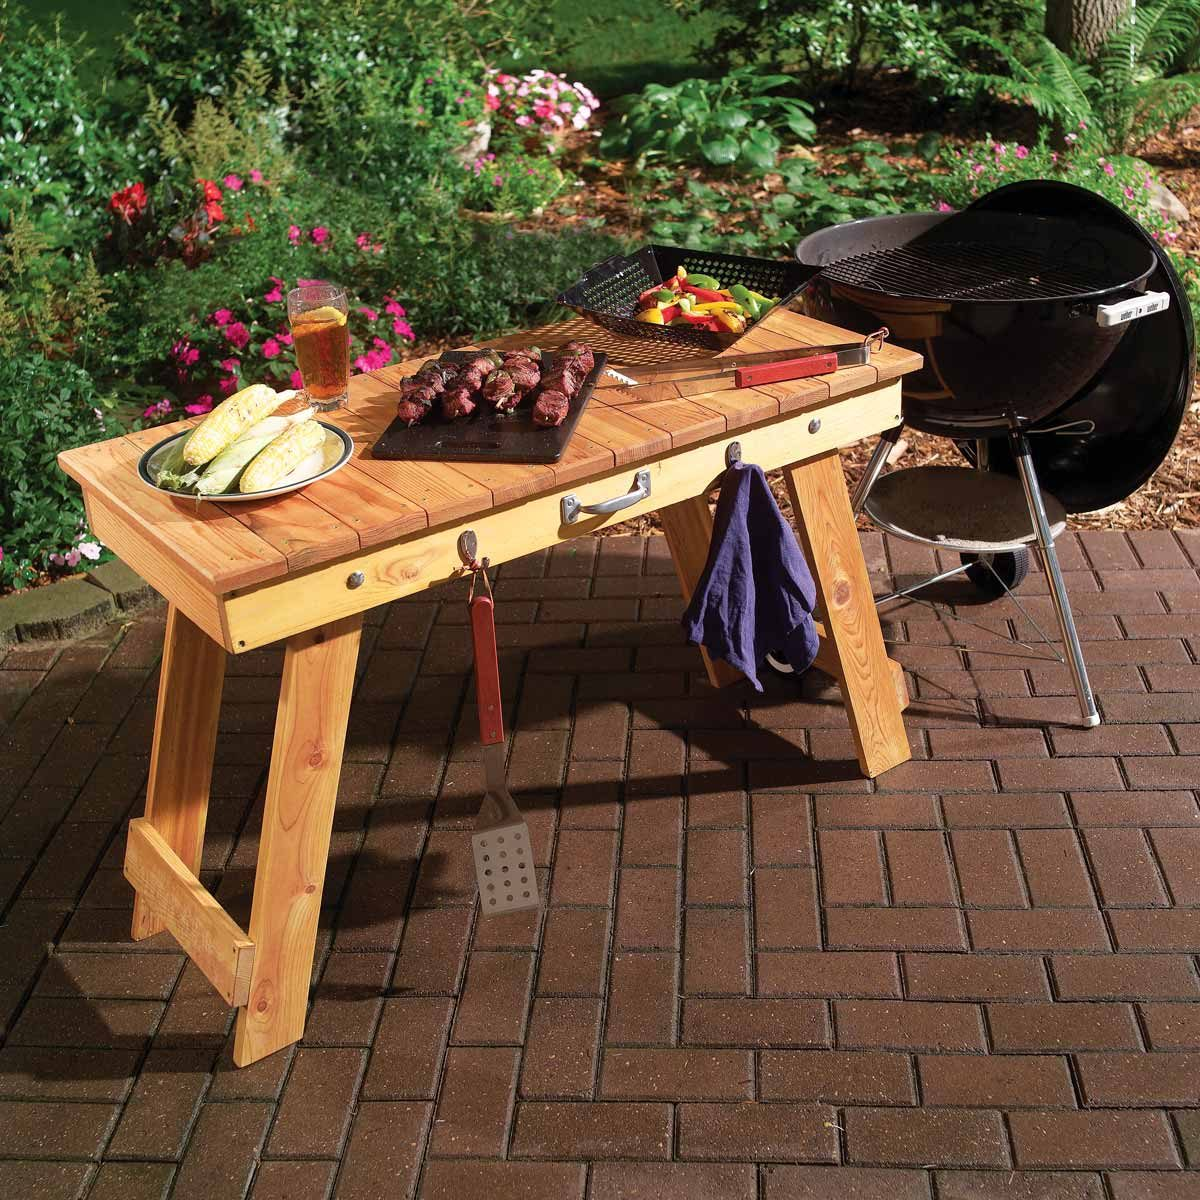 Transportable Fold Up Grill Table The Family Handyman